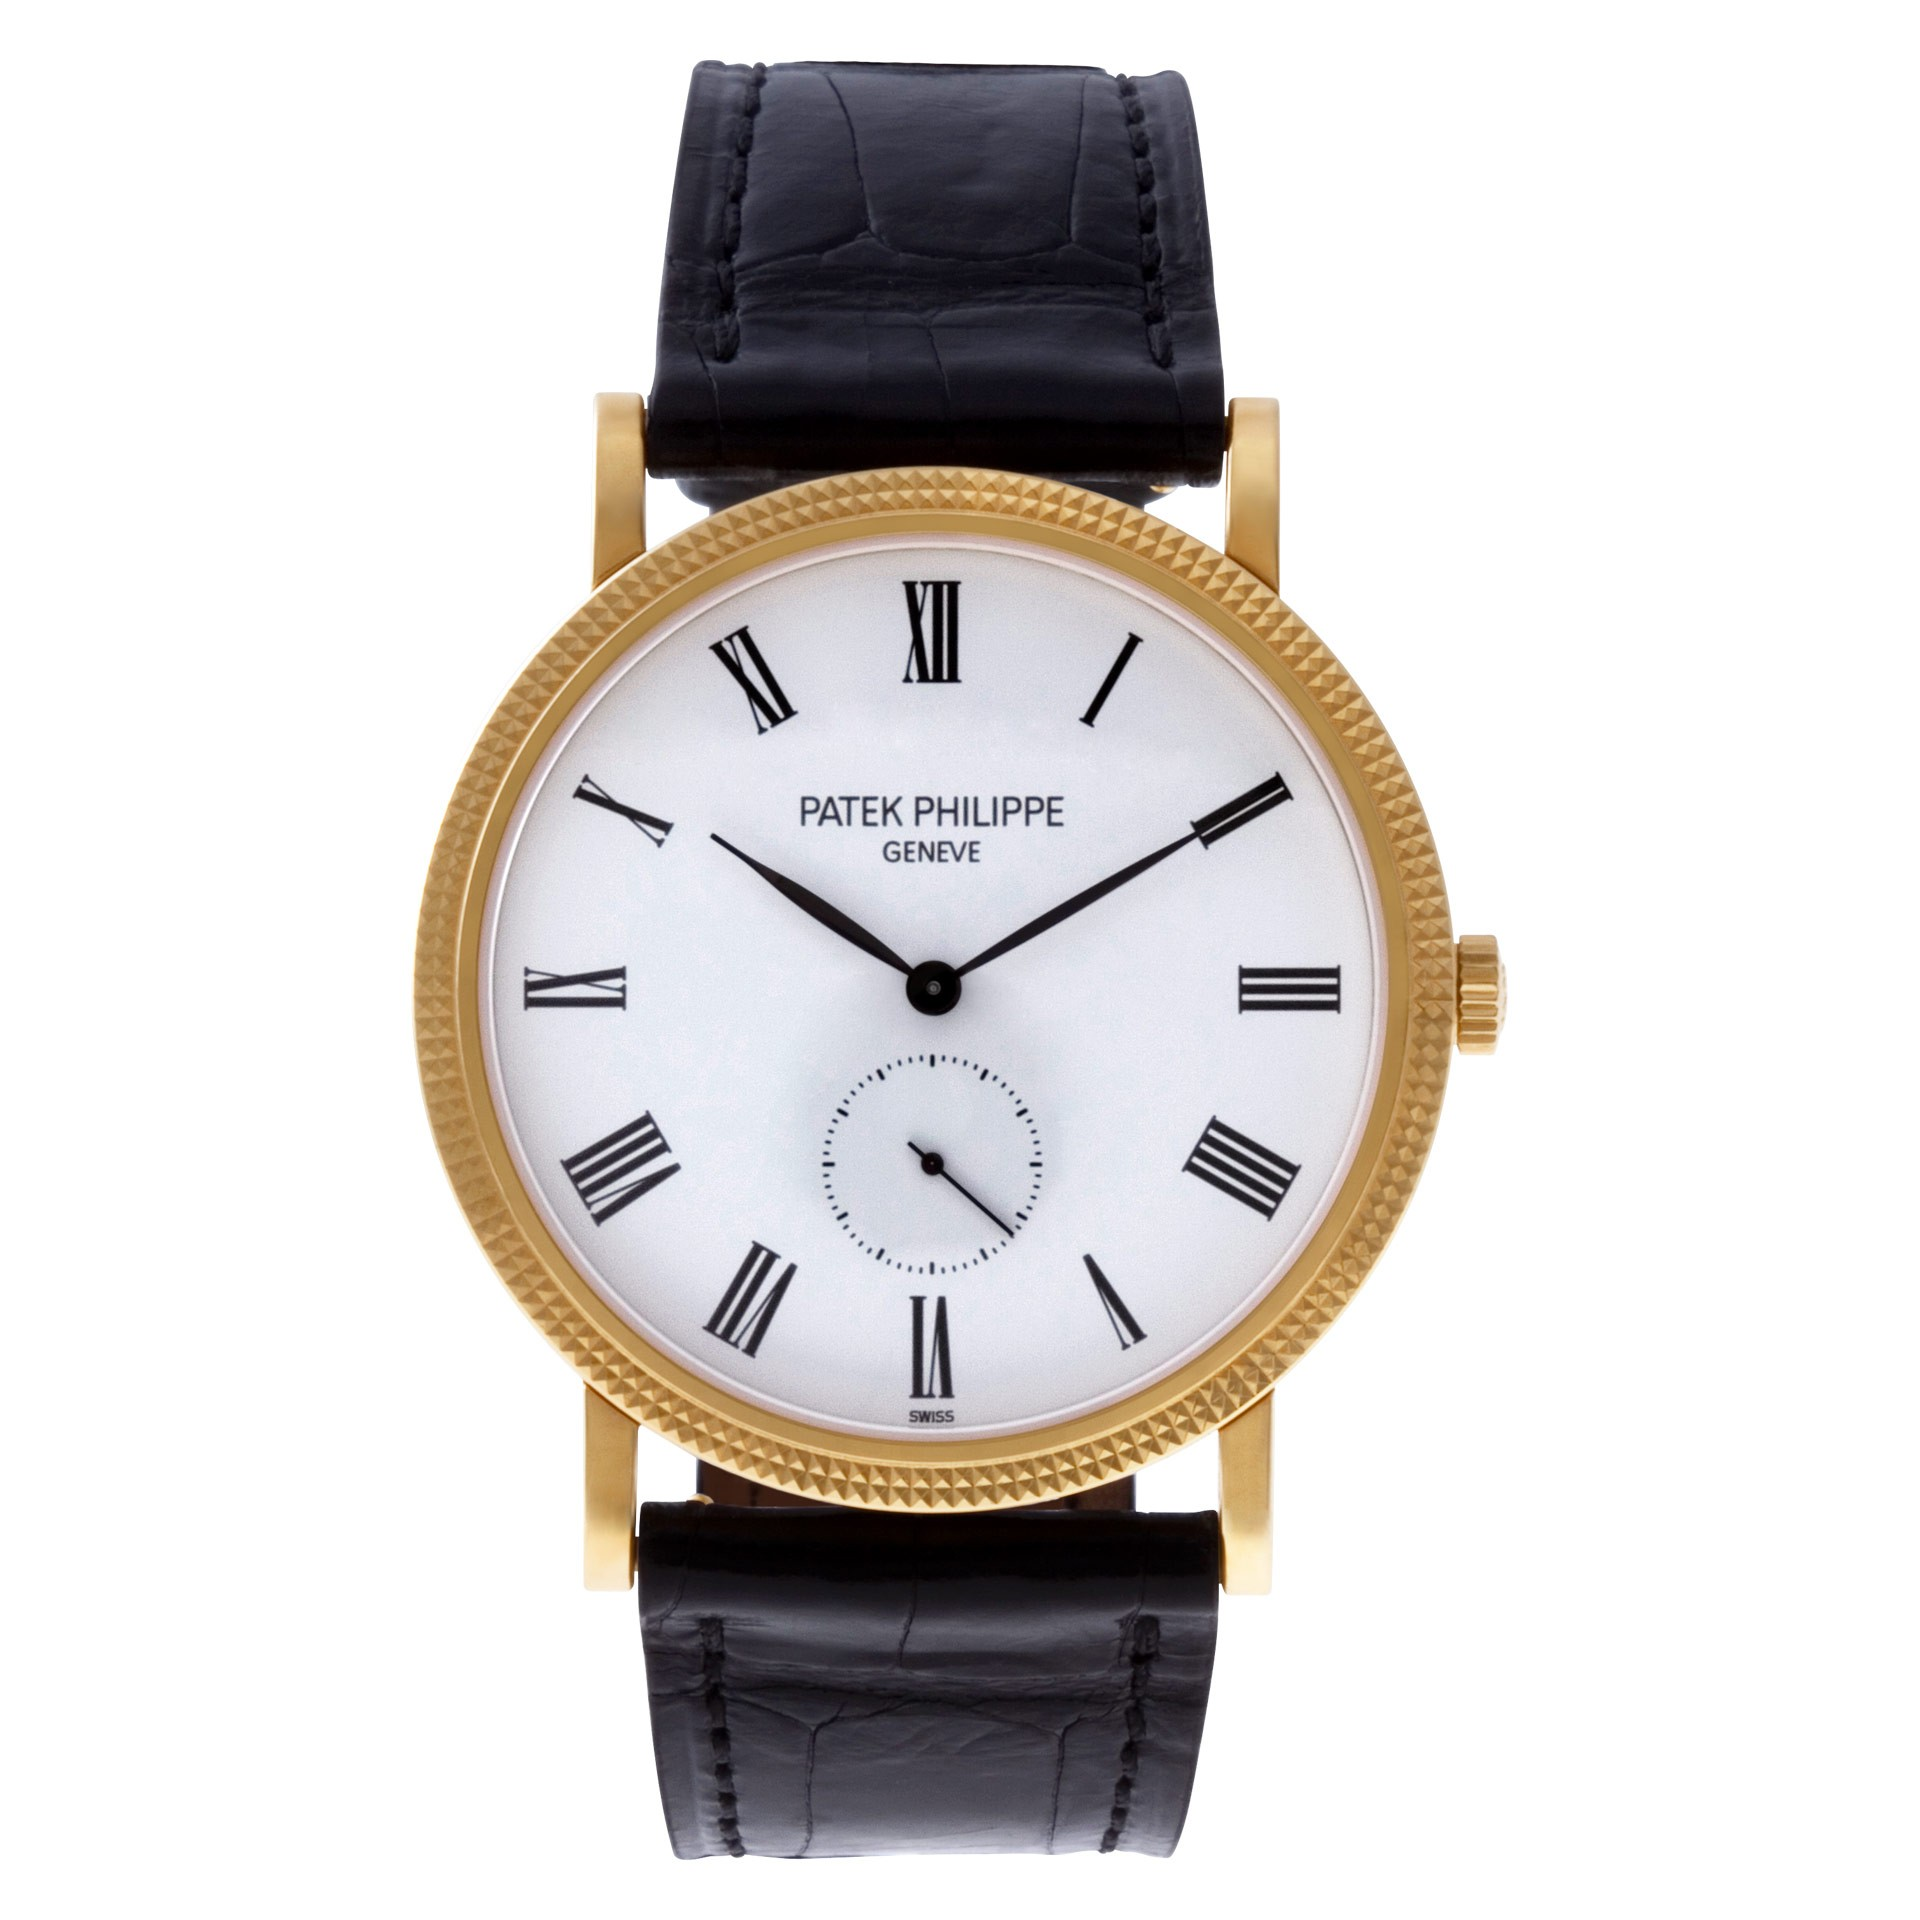 Elegant Dress Watches for Men Patek Philippe Calatrava ref. 5119J